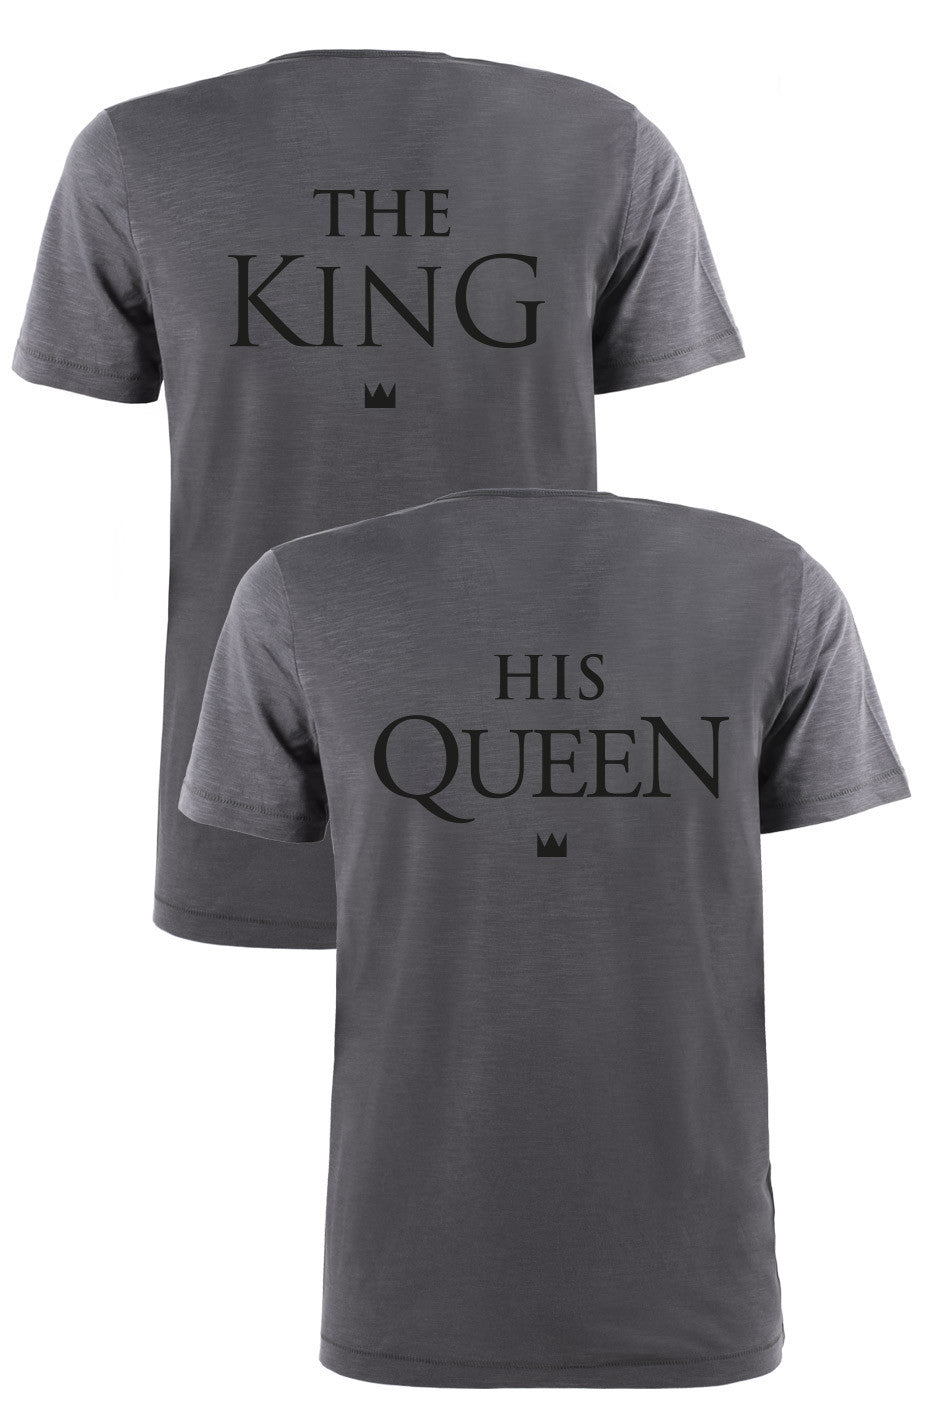 8a2193d55b THE KING AND HIS QUEEN T-SHIRT | NOHOW STYLE